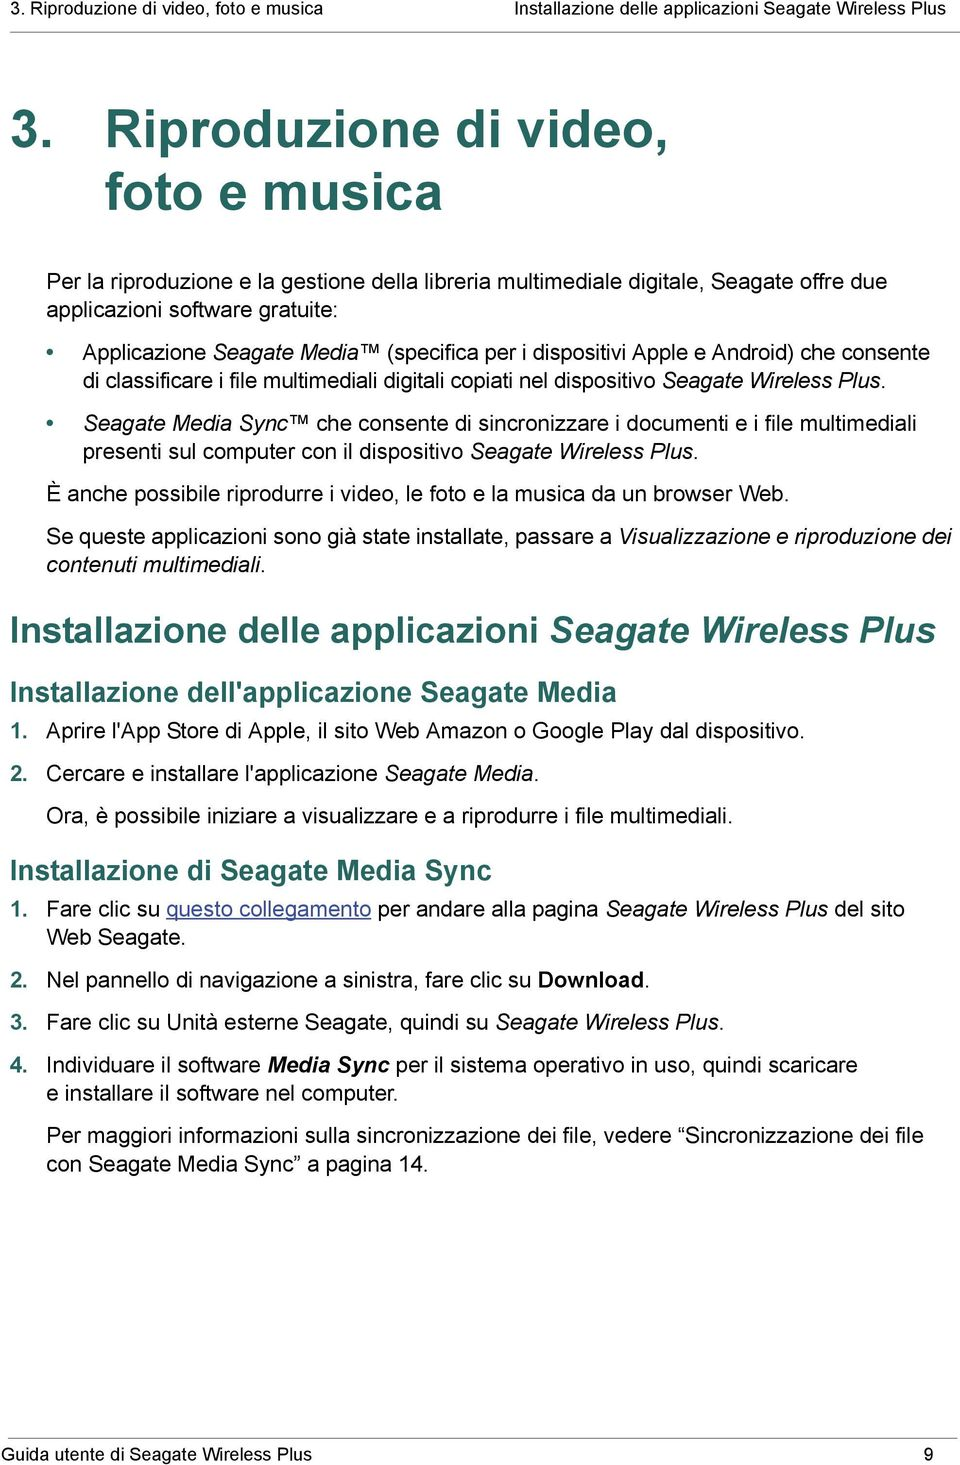 per i dispositivi Apple e Android) che consente di classificare i file multimediali digitali copiati nel dispositivo Seagate Wireless Plus.